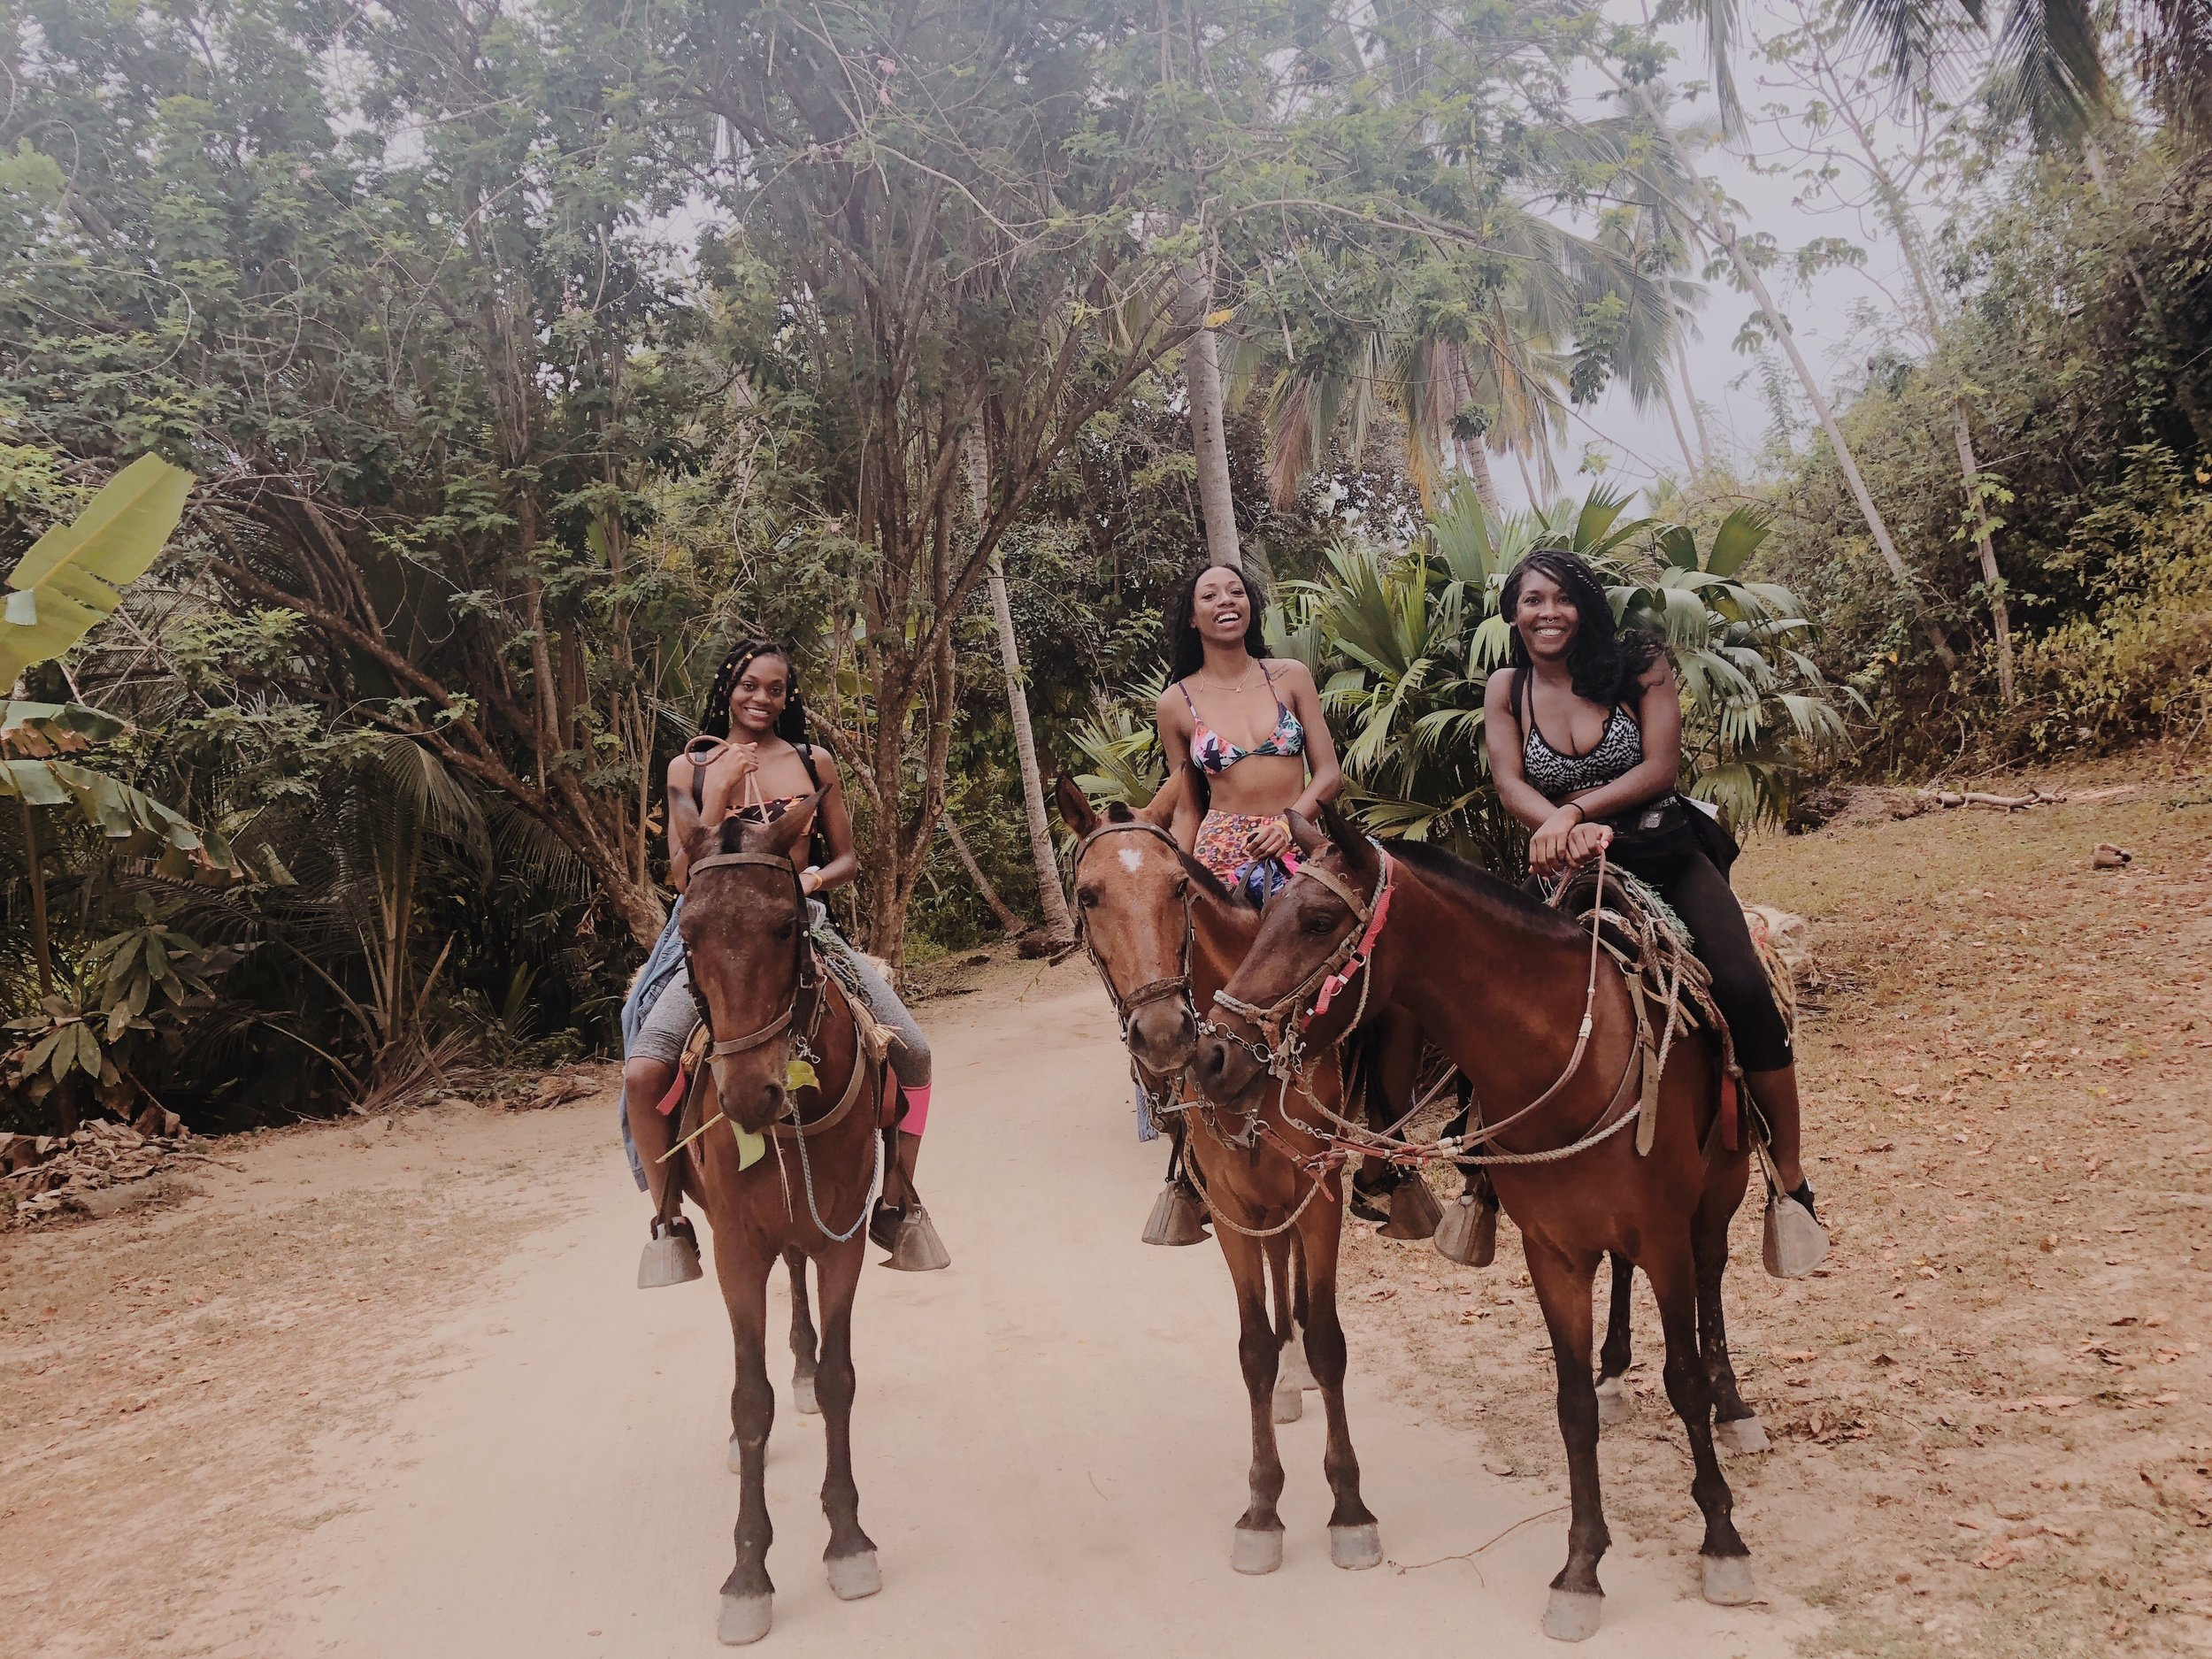 Horseback riding in Tayrona